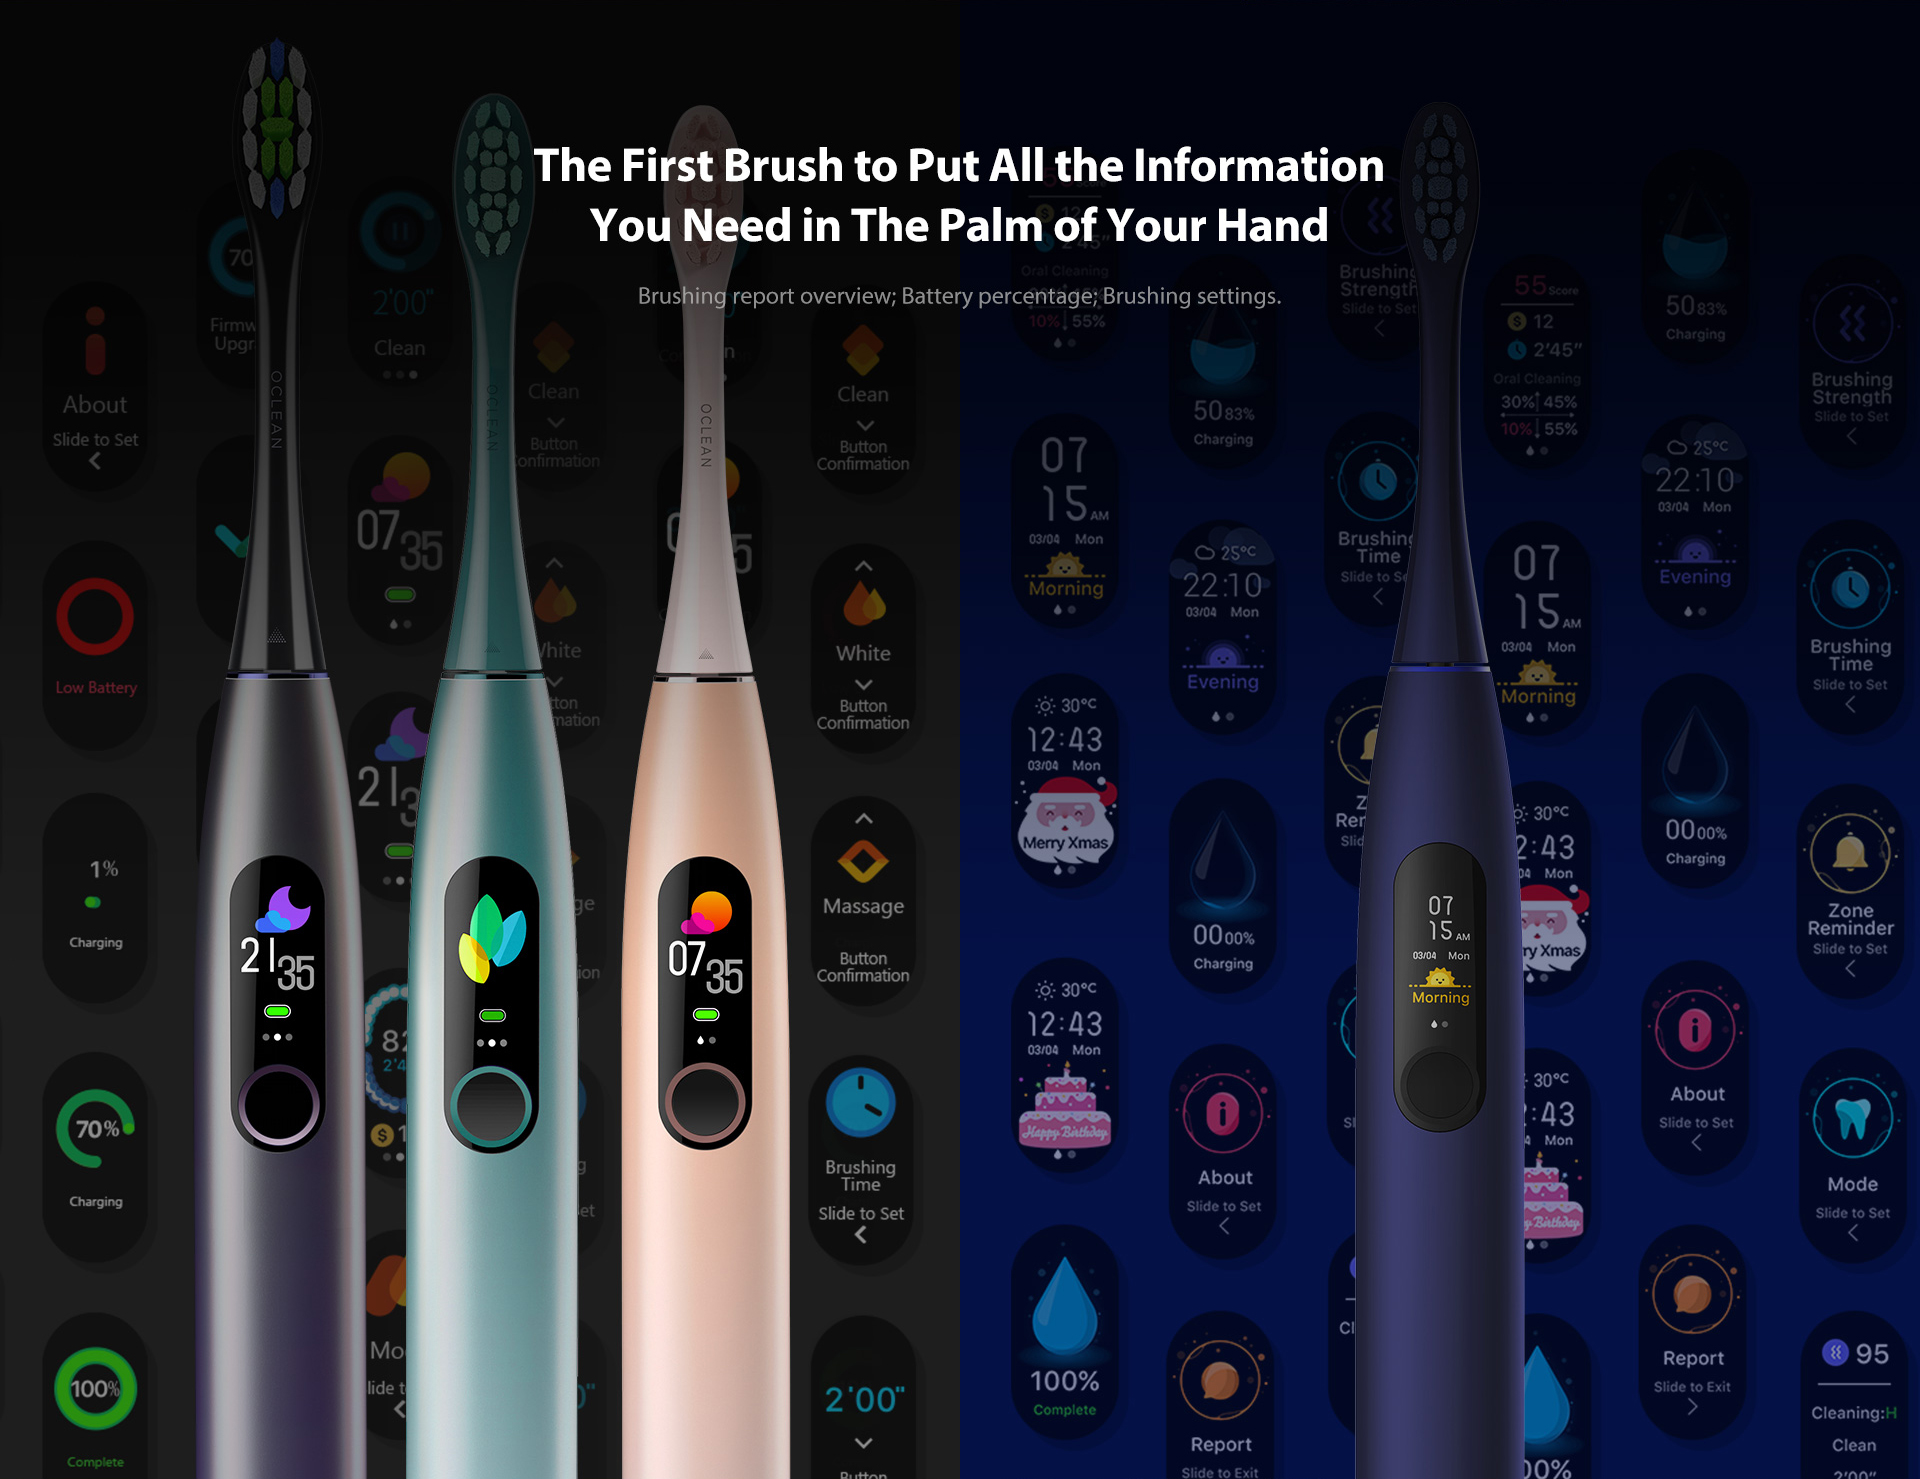 the first brush to put all the information you need in the palm of your hand